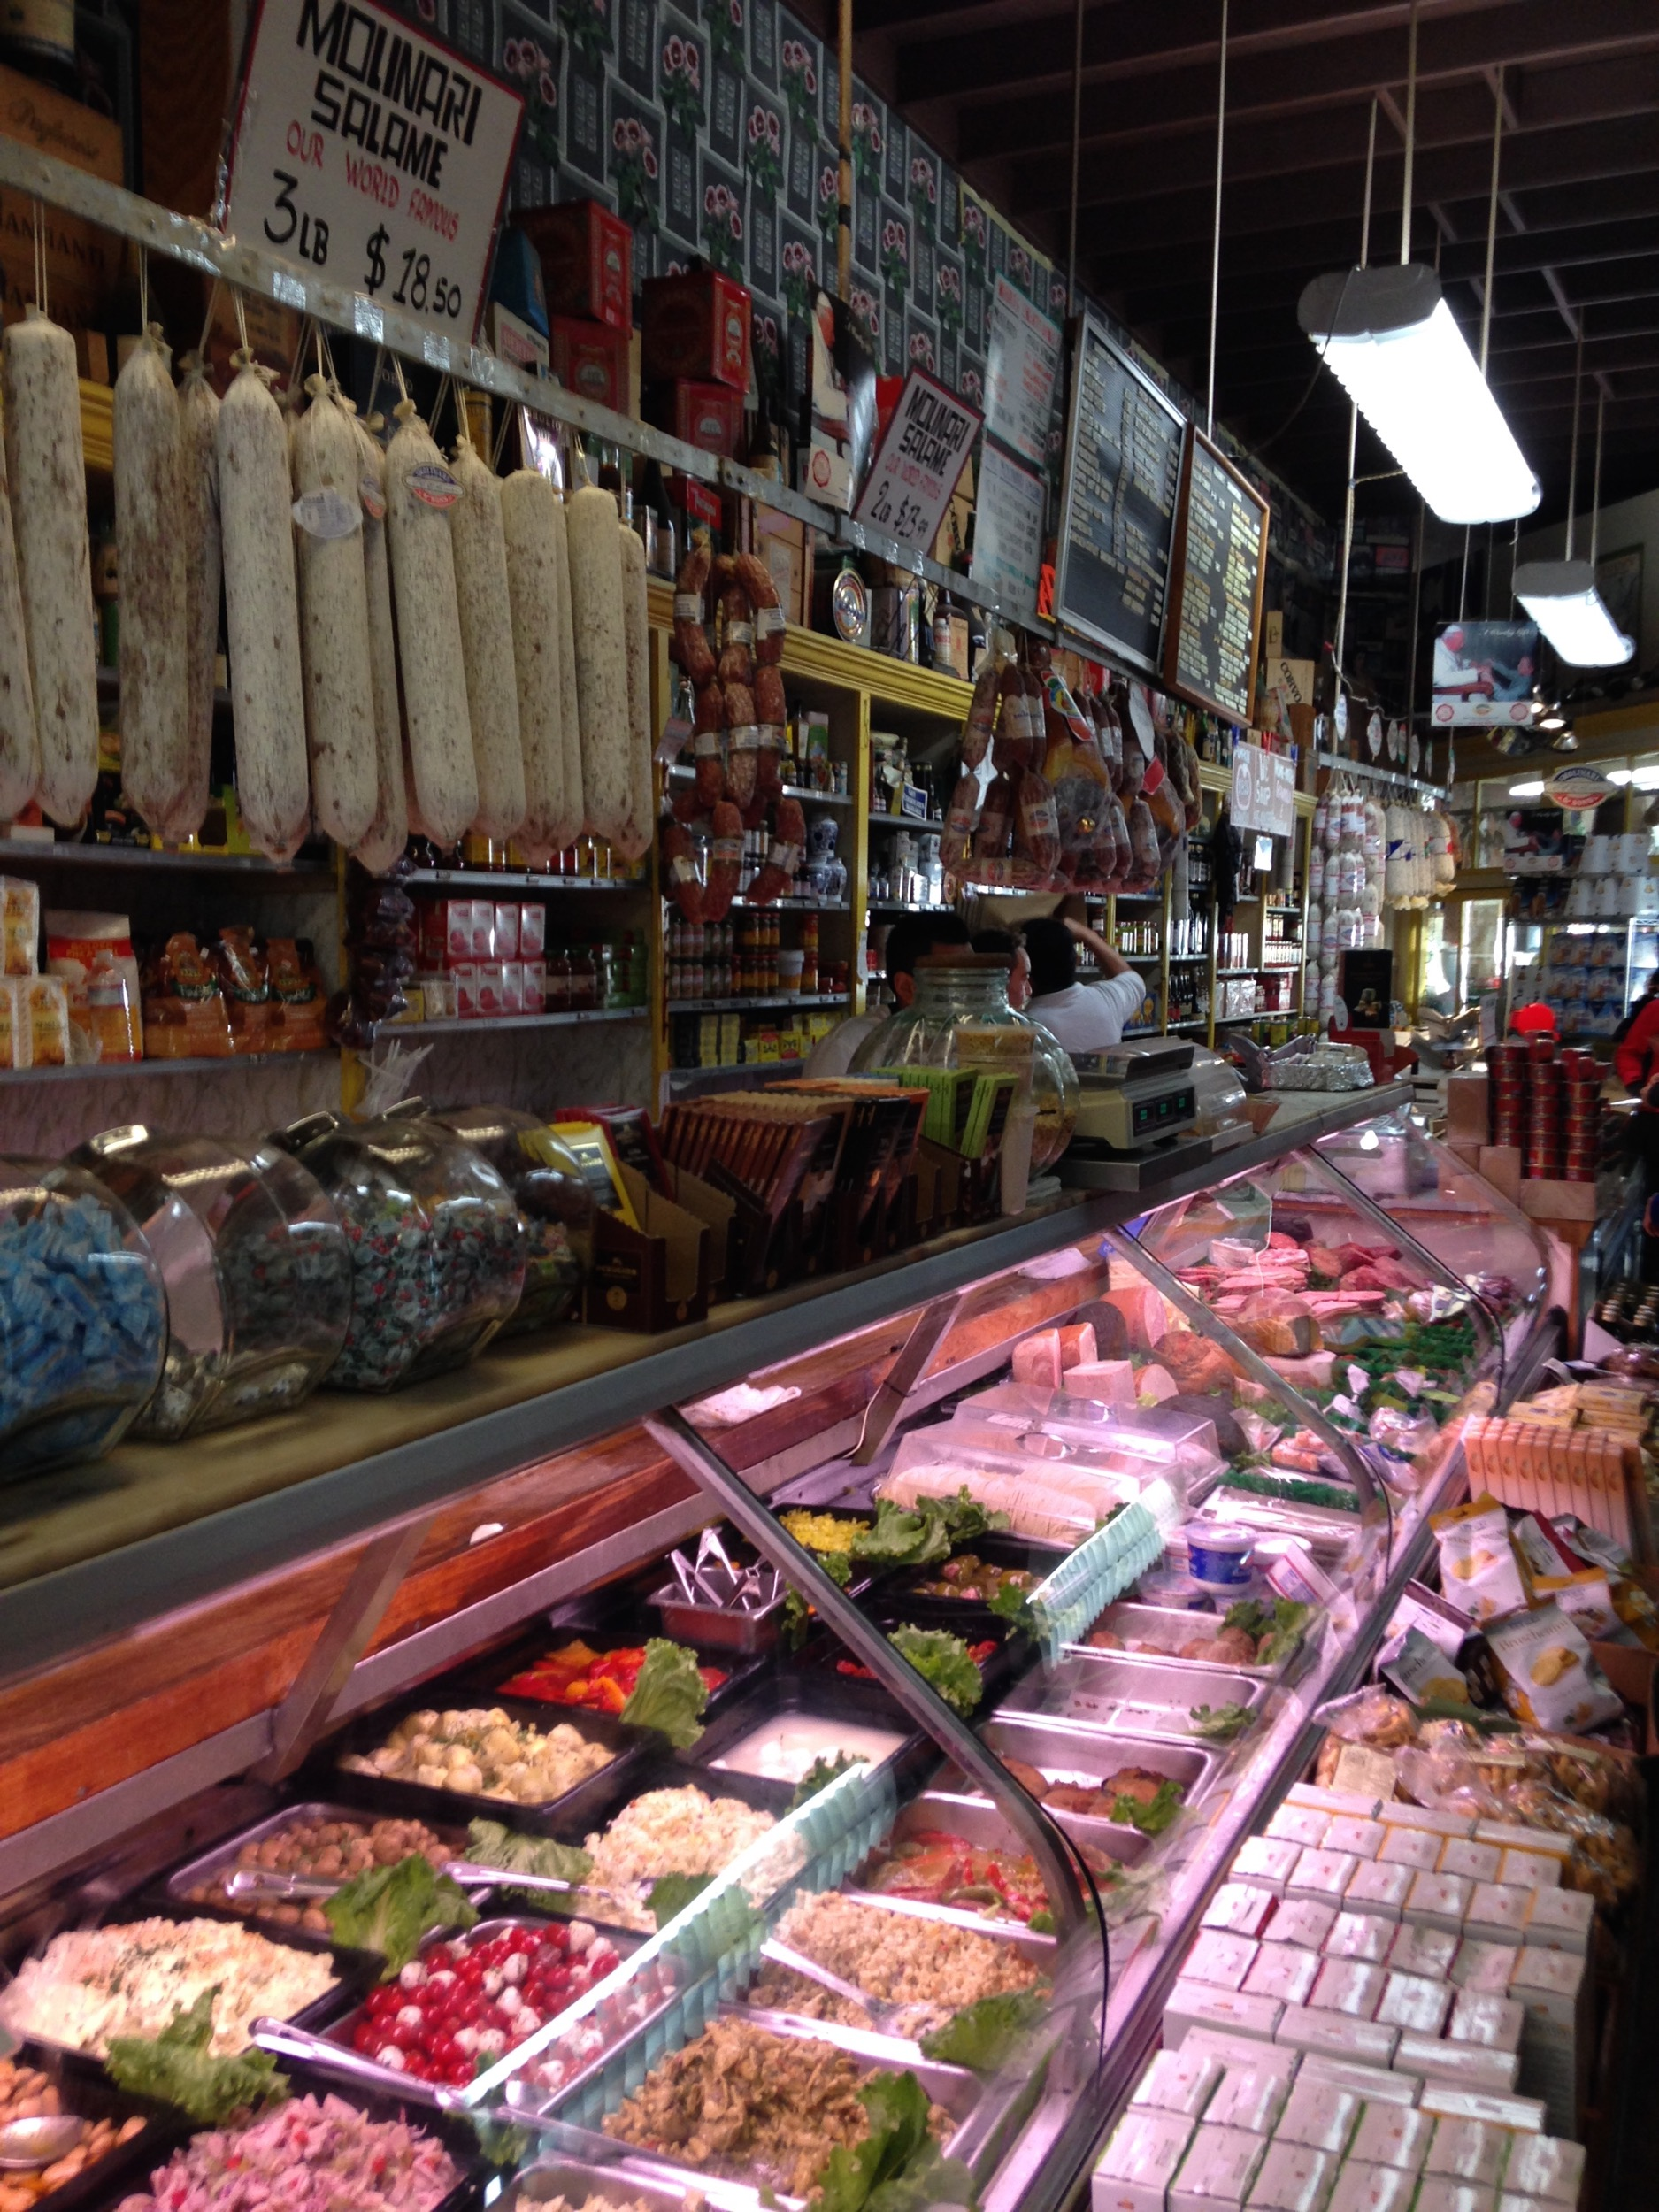 Made our first stop at  Molinari . An authentic Italian deli that makes amazing sandwiches. It's also a great spot to get some unique Christmas gifts.